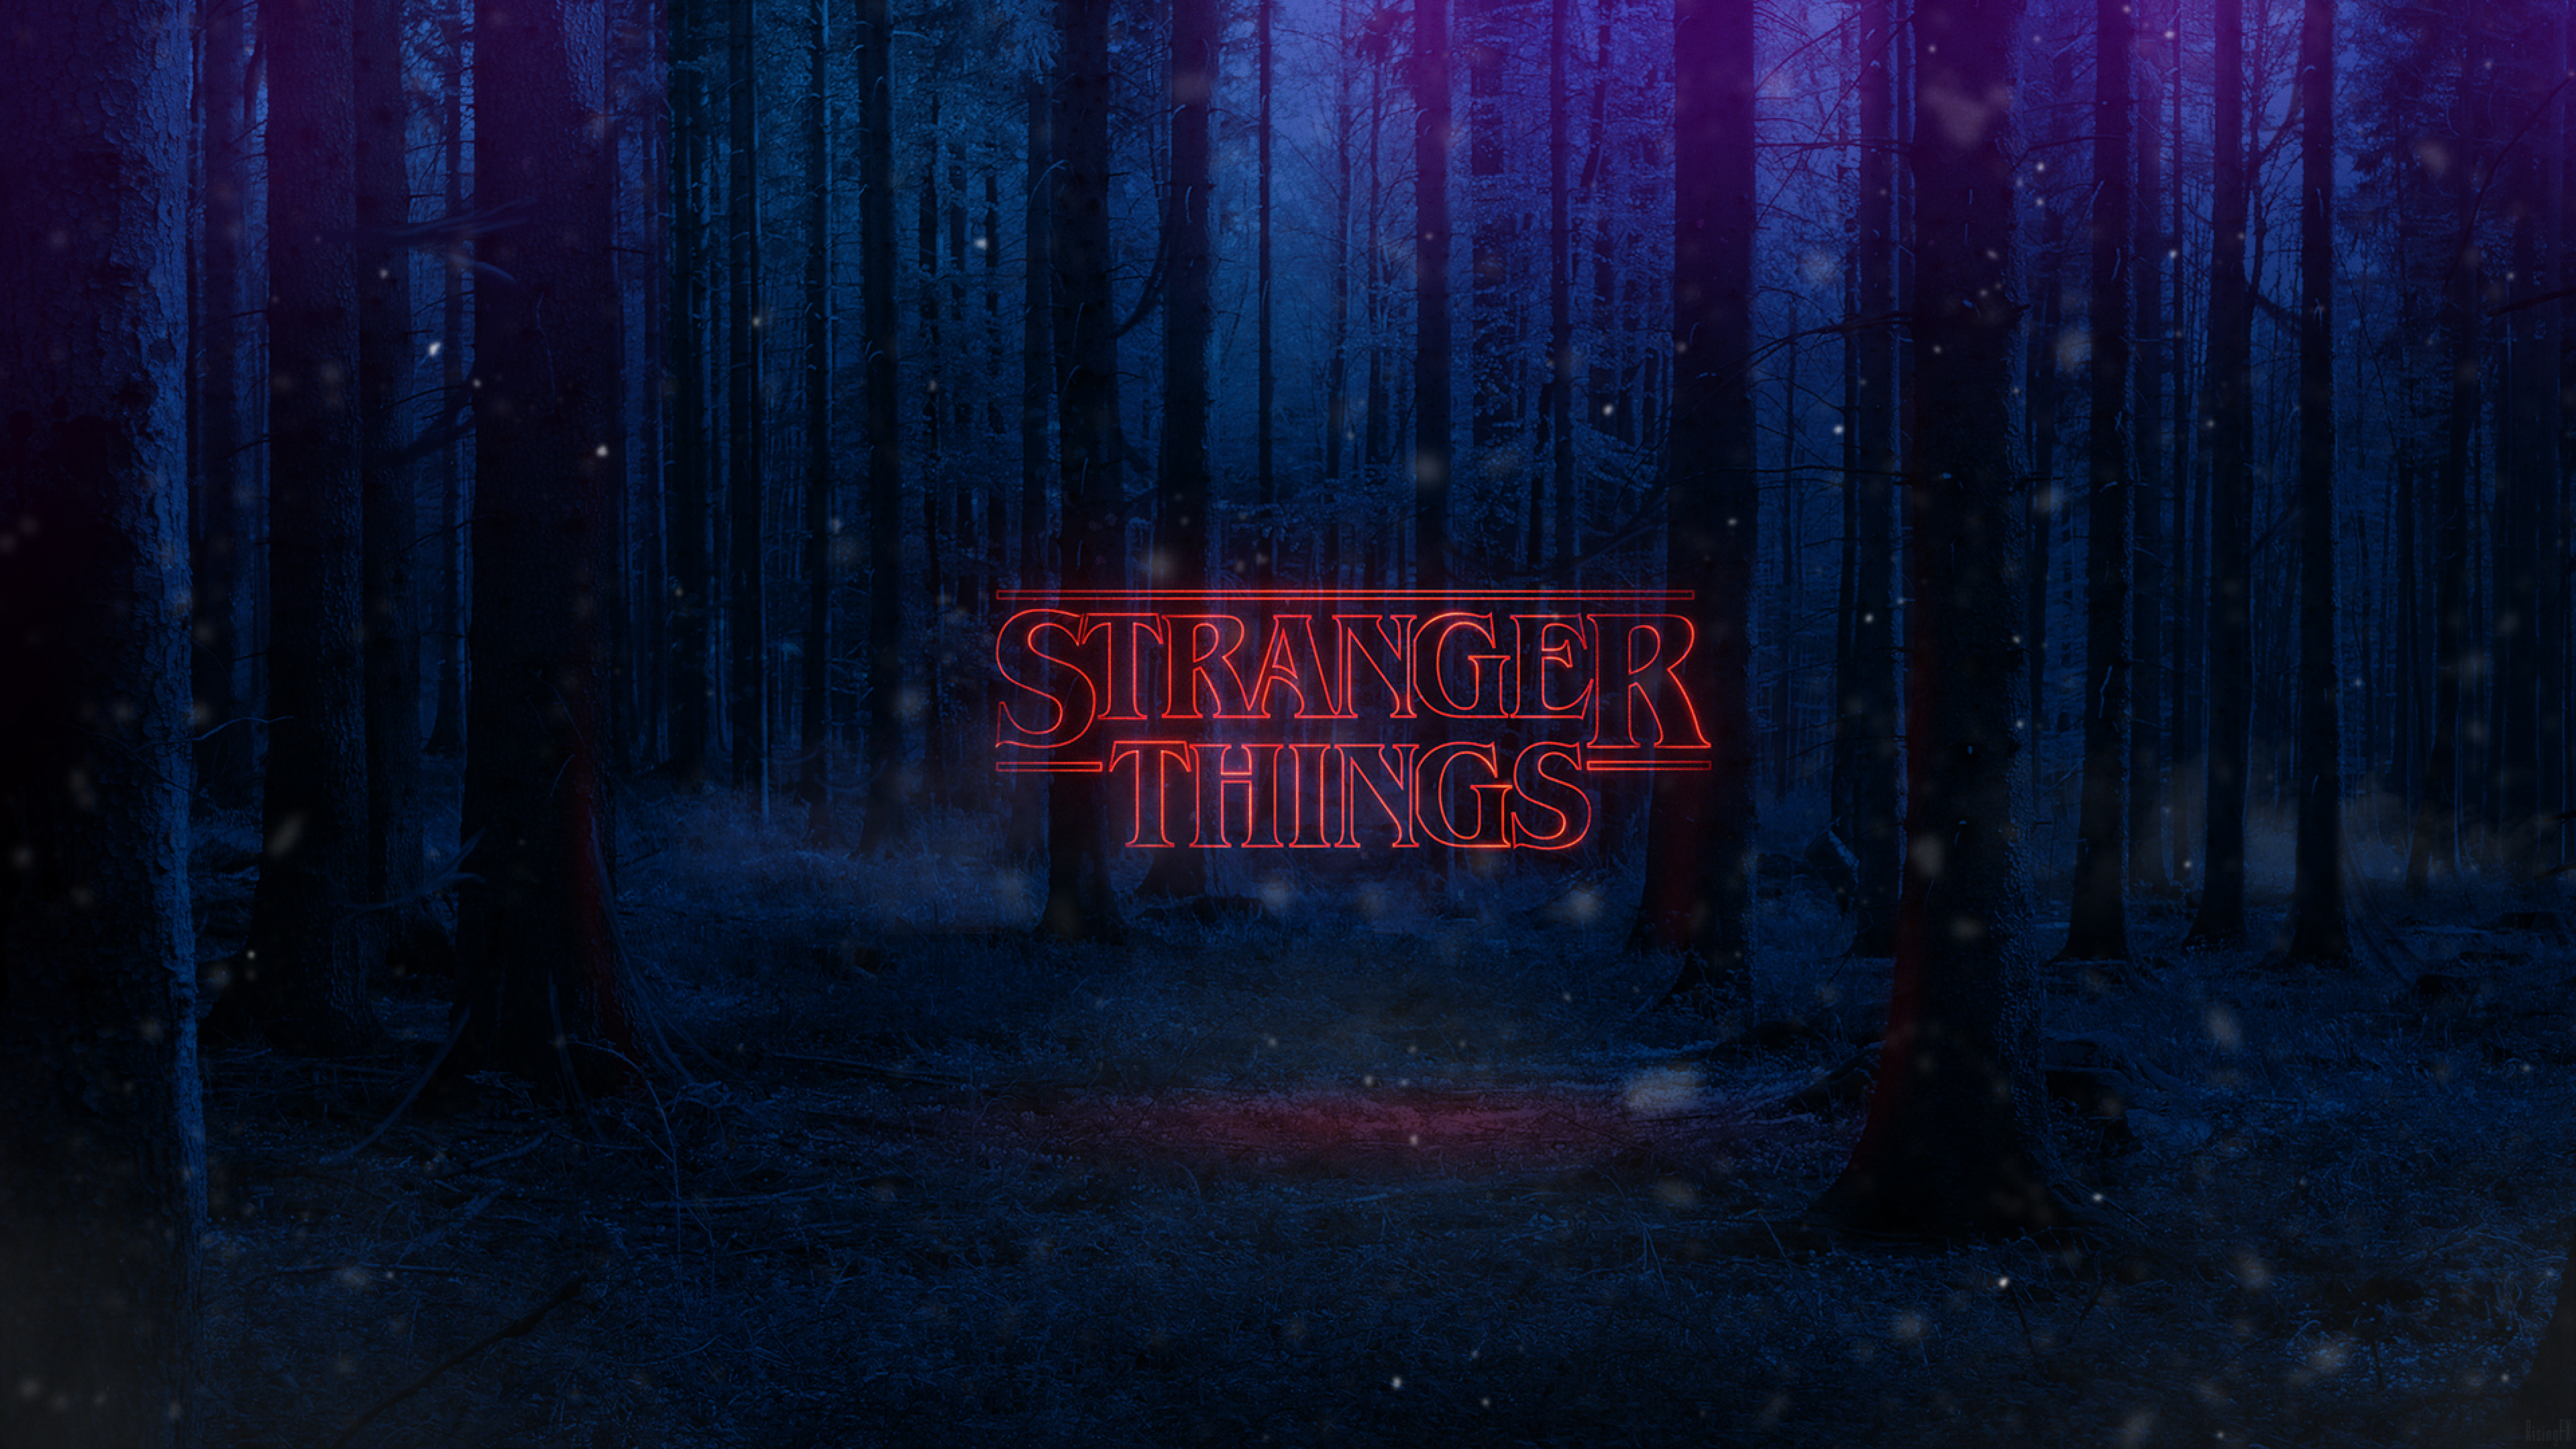 Stranger Things Text Poster Full HD Wallpaper 3840x2160